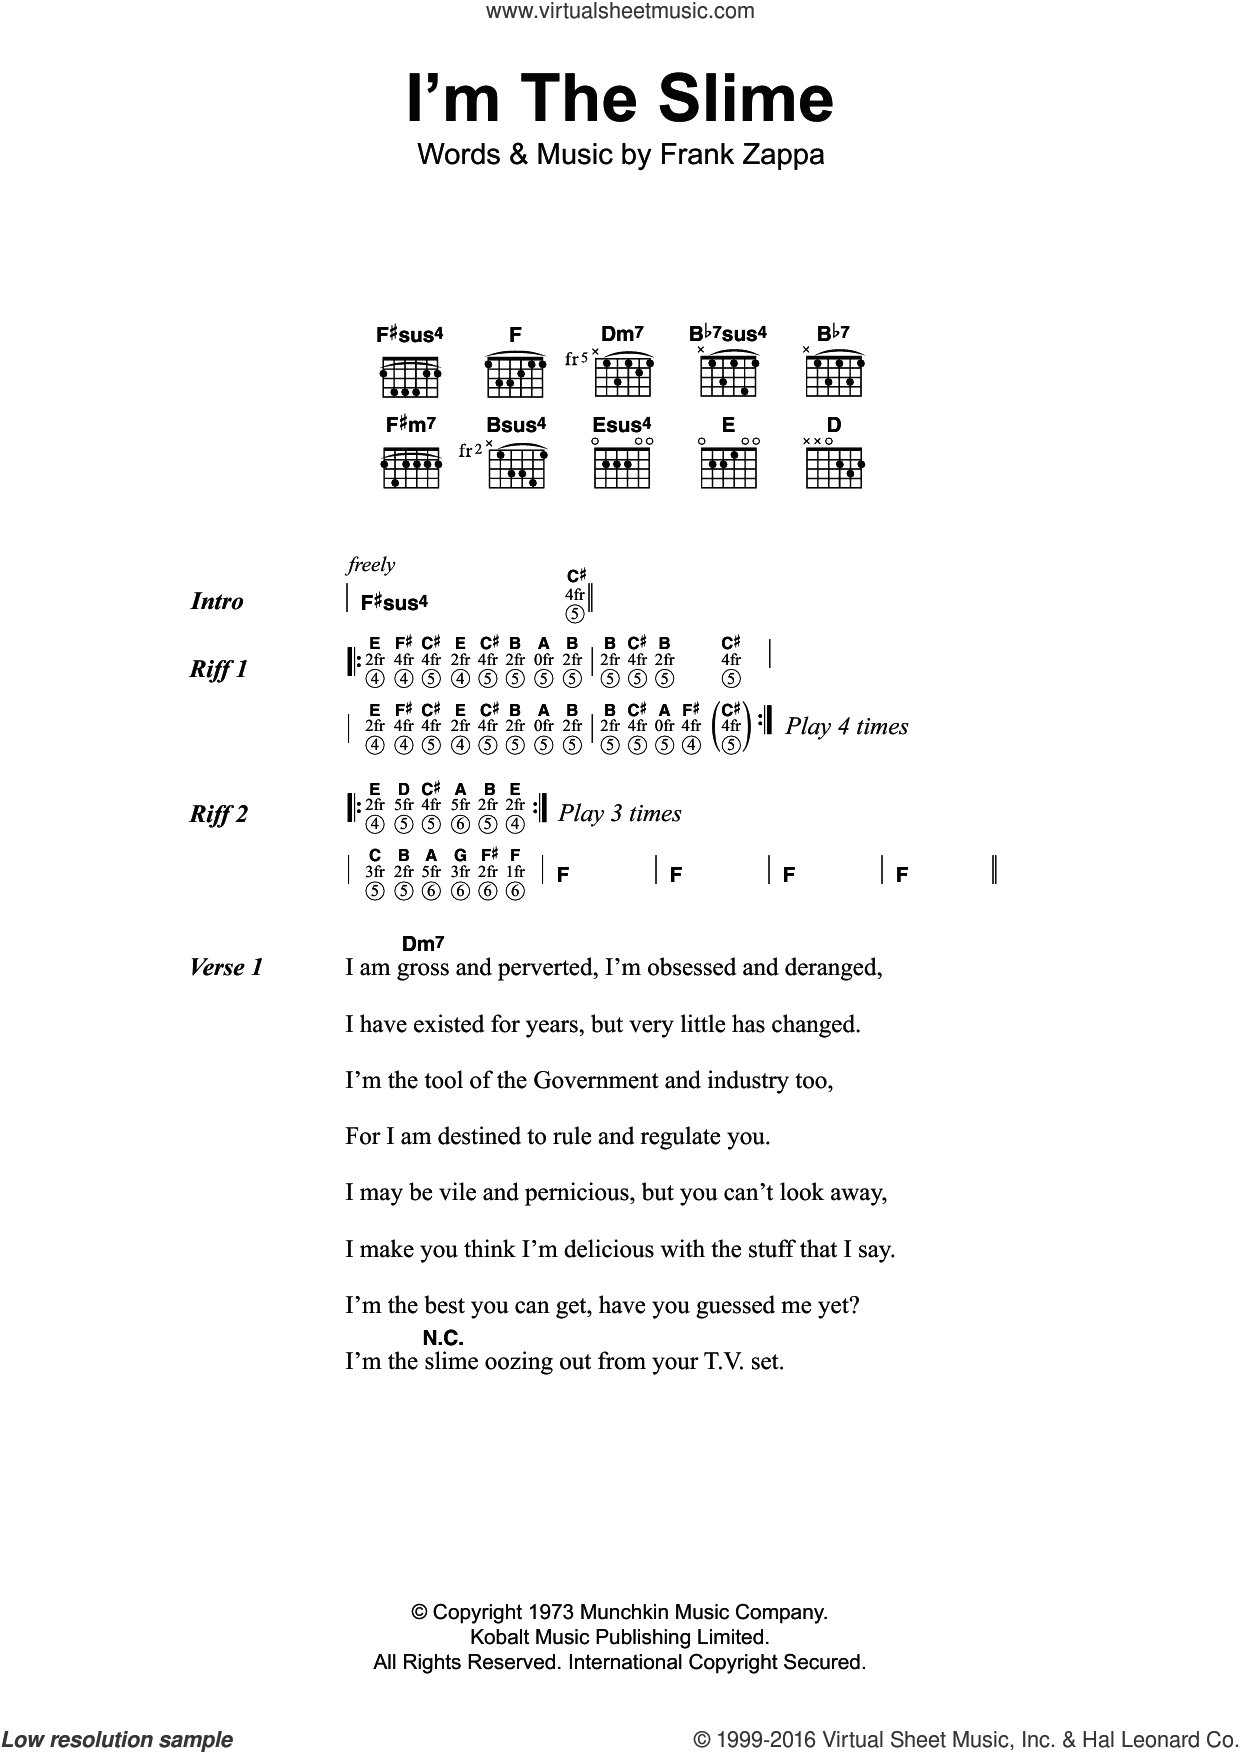 I'm The Slime sheet music for guitar (chords) by Frank Zappa, intermediate. Score Image Preview.